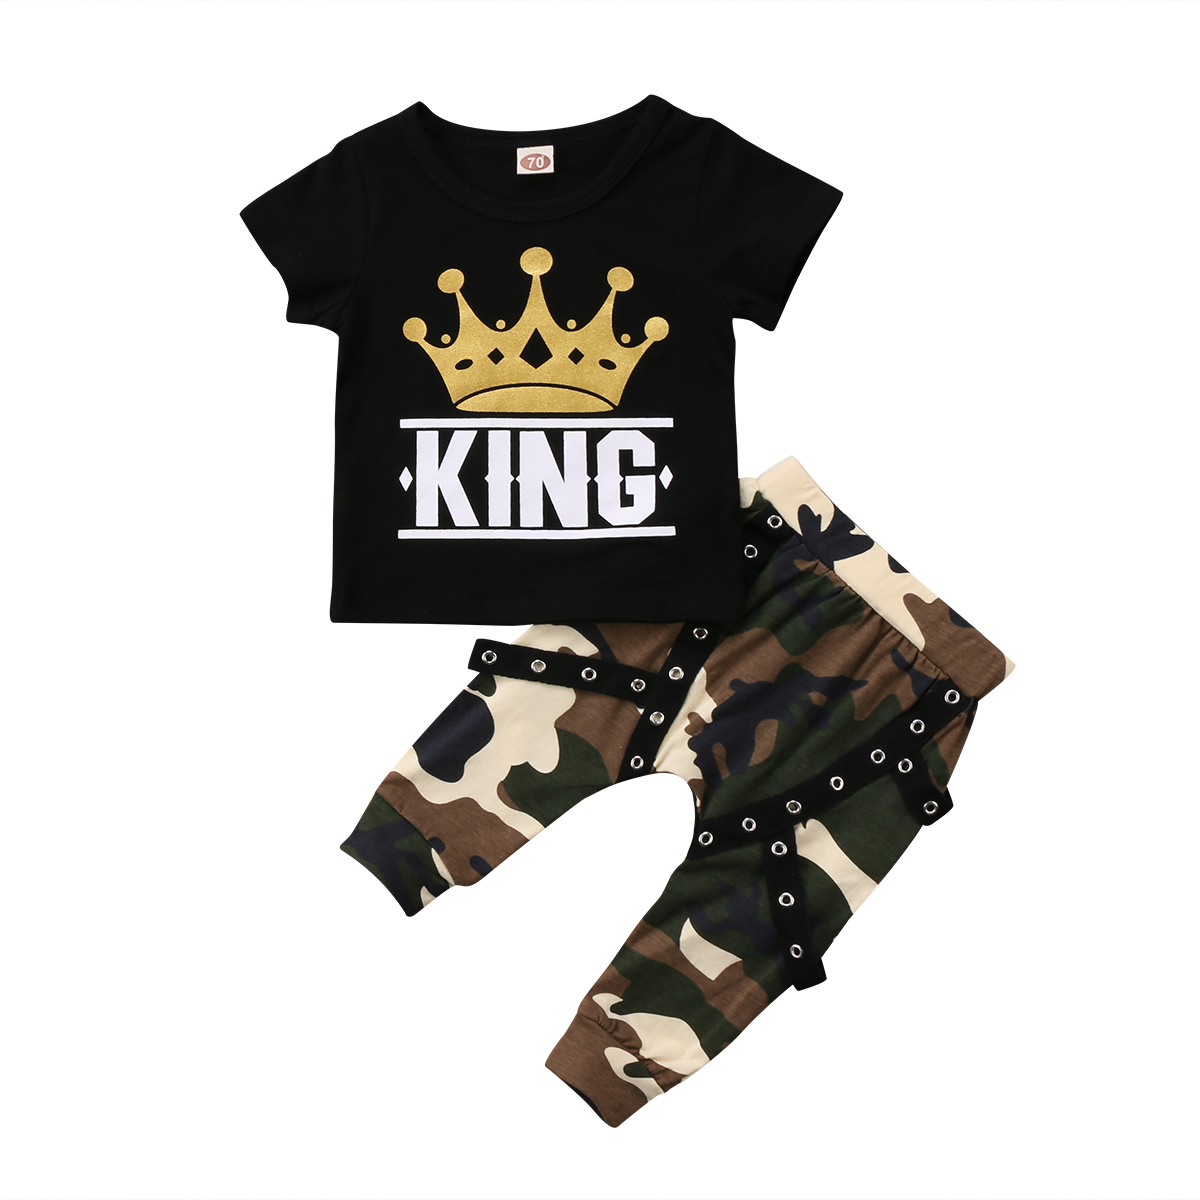 Toddler Kids Baby Boys Clothing Tops T-shirt Short Sleeve Crown Camo Pants Cotton Casual Outfits Clothes Boy 1-5T 2017 new boys clothing set camouflage 3 9t boy sports suits kids clothes suit cotton boys tracksuit teenage costume long sleeve